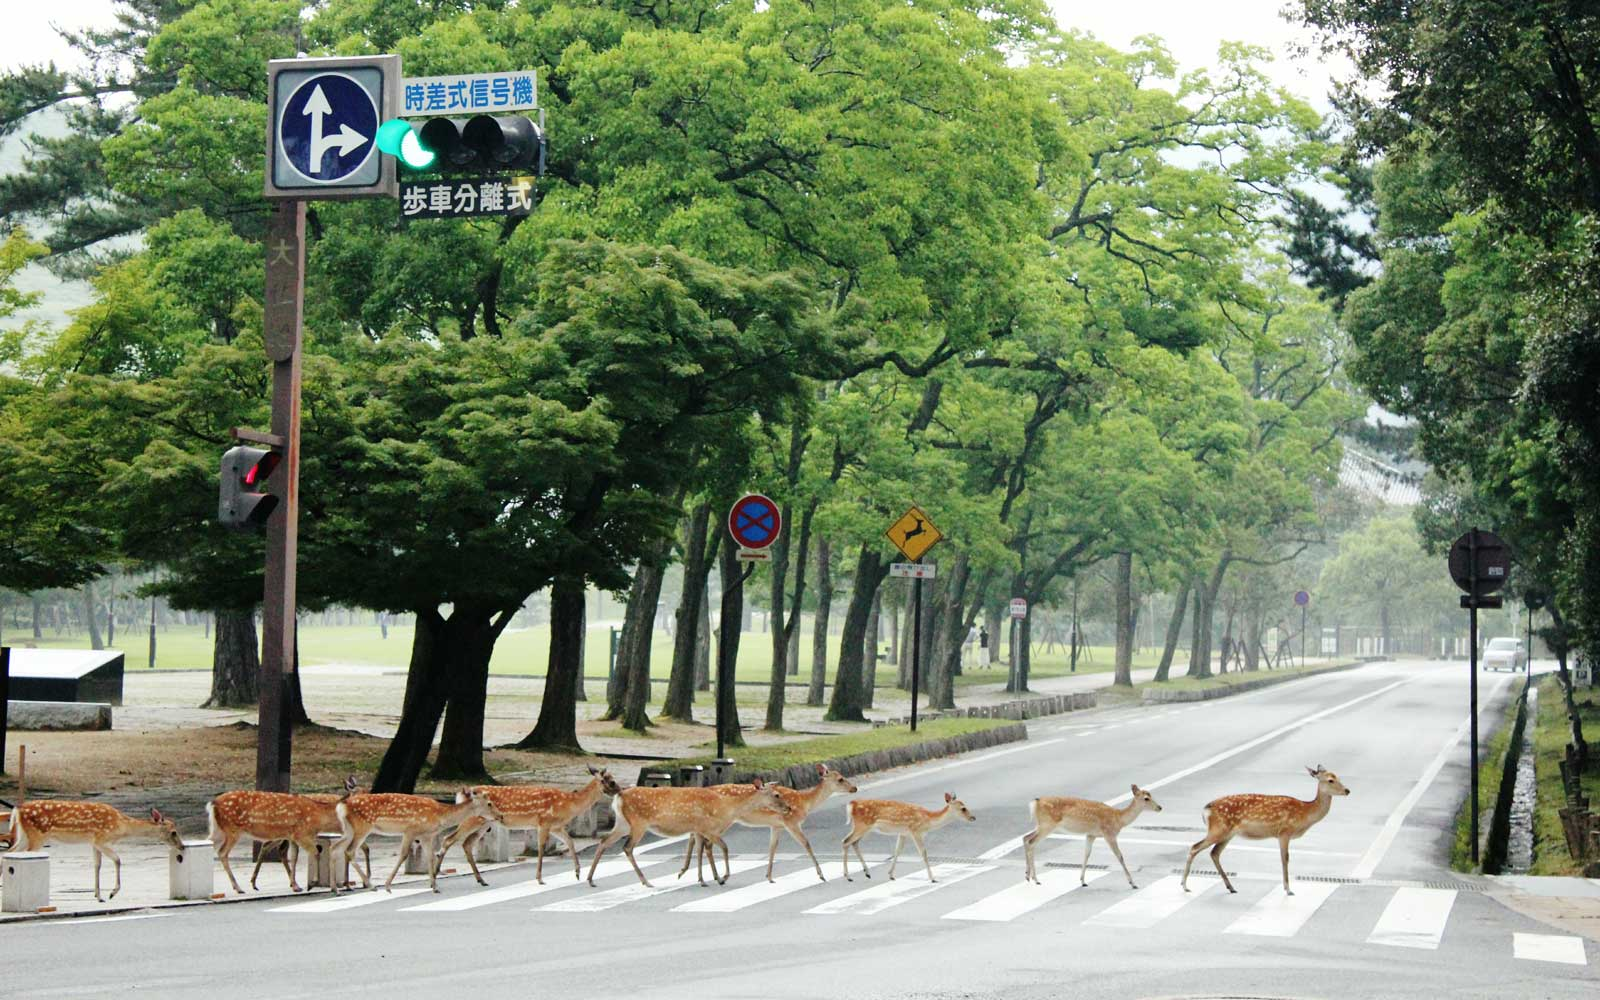 Deer crossing at a walkway in Nara Prefecture, Japan